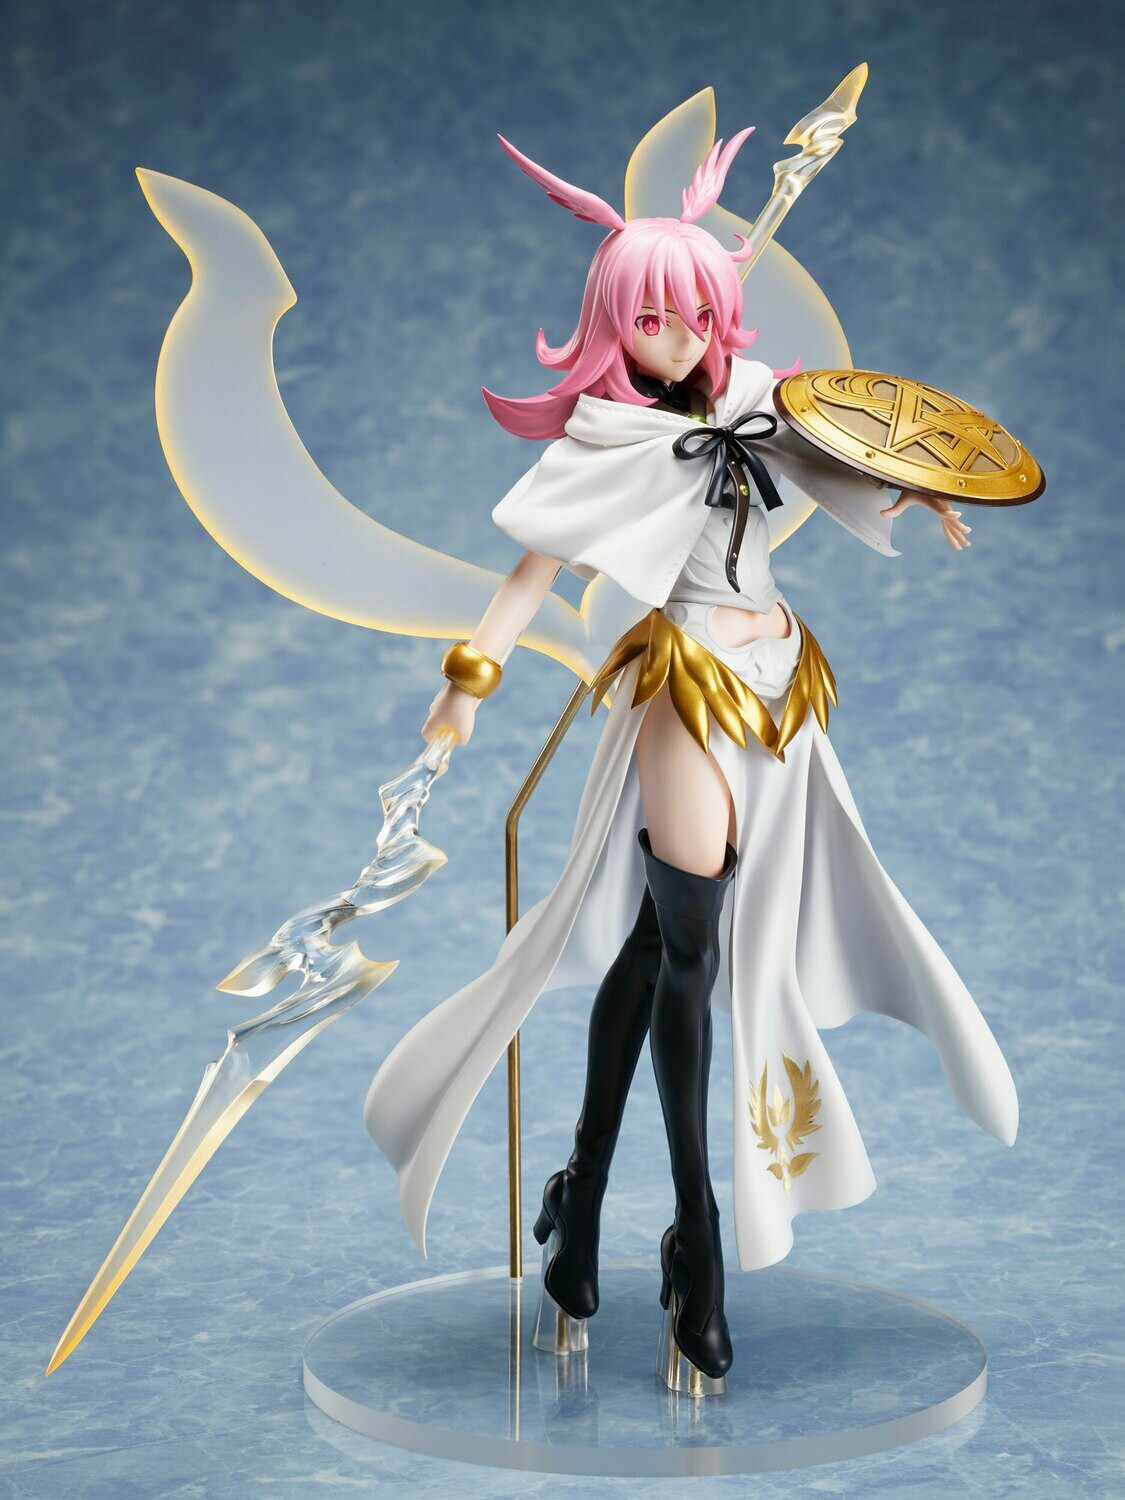 PRE-ORDER Fate/Grand Order - Lancer Valkyrie (Hildr) 1/7 Scale Figure